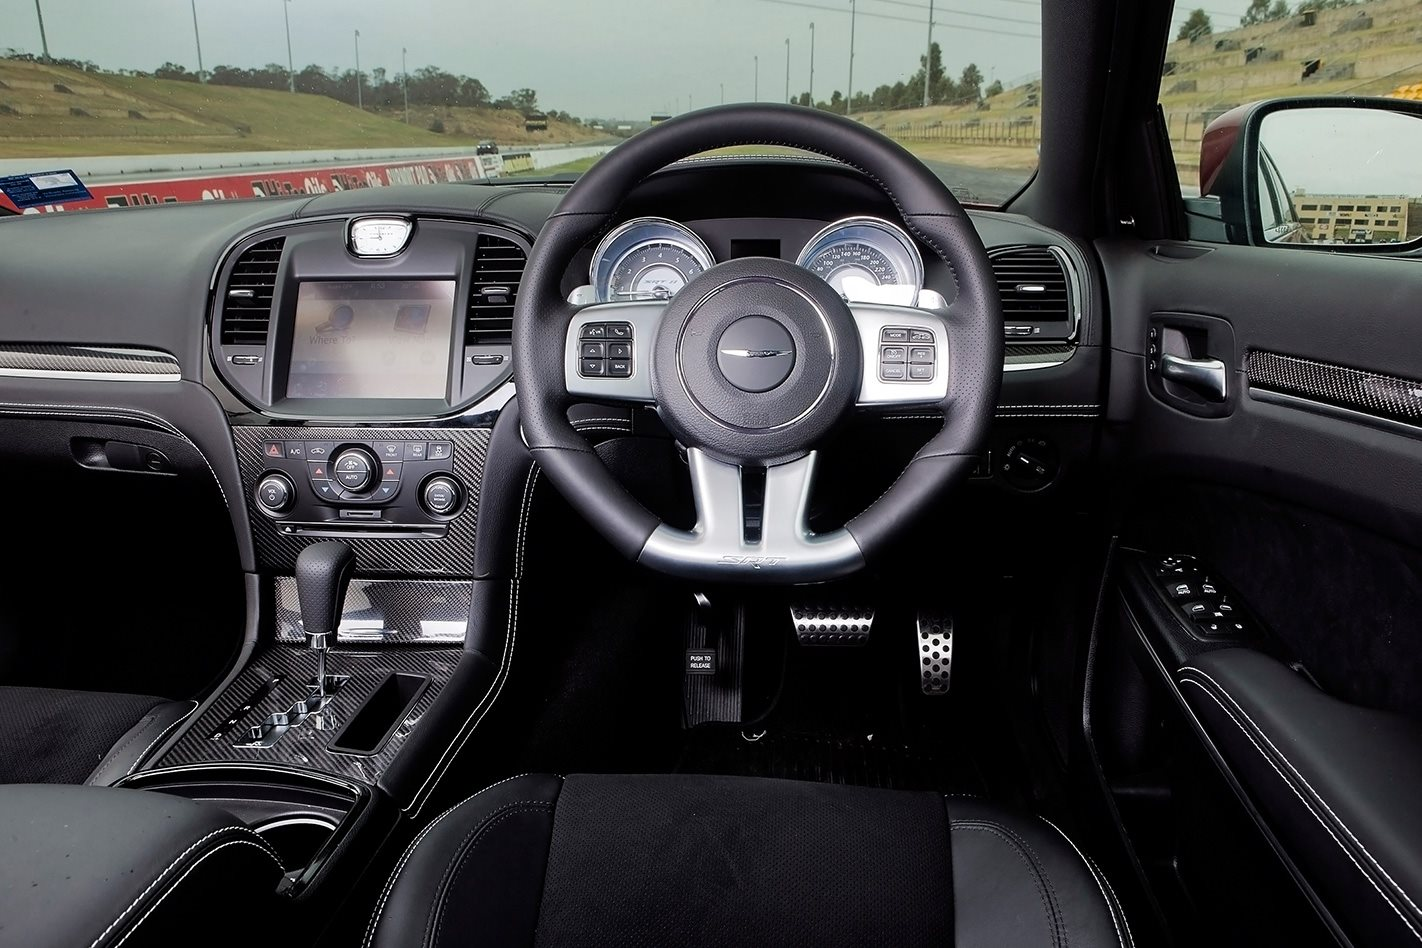 2012-Chrysler-300-SRT8-interior.jpg